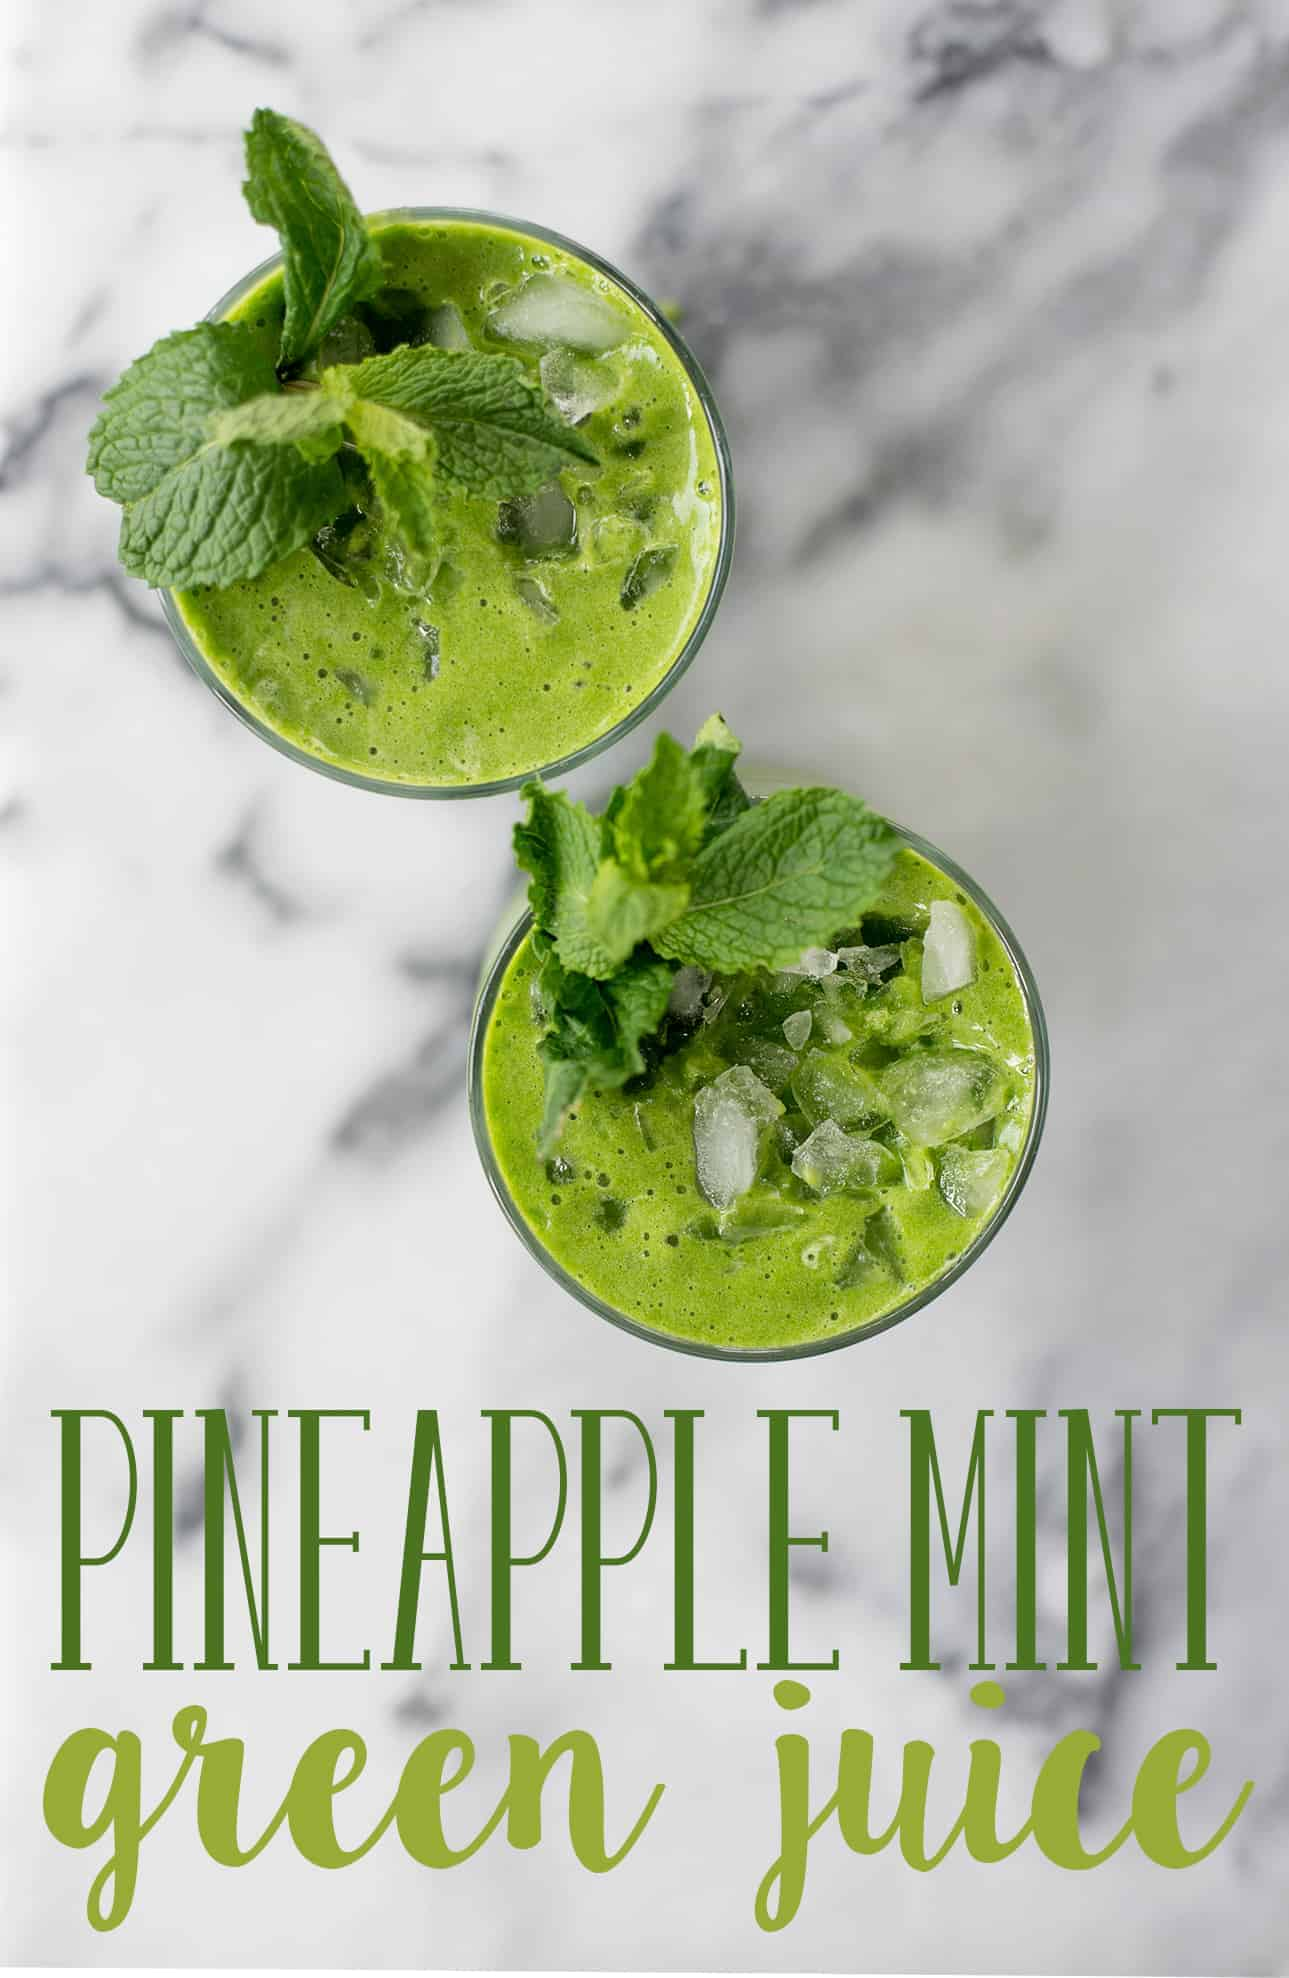 Pineapple Mint Green Drink! Tastes like a pineapple mojito. Mint, kale, pineapple and lime, a refreshing juice for Spring and Summer. Vegan and Gluten-Free. | delishknowledge.com